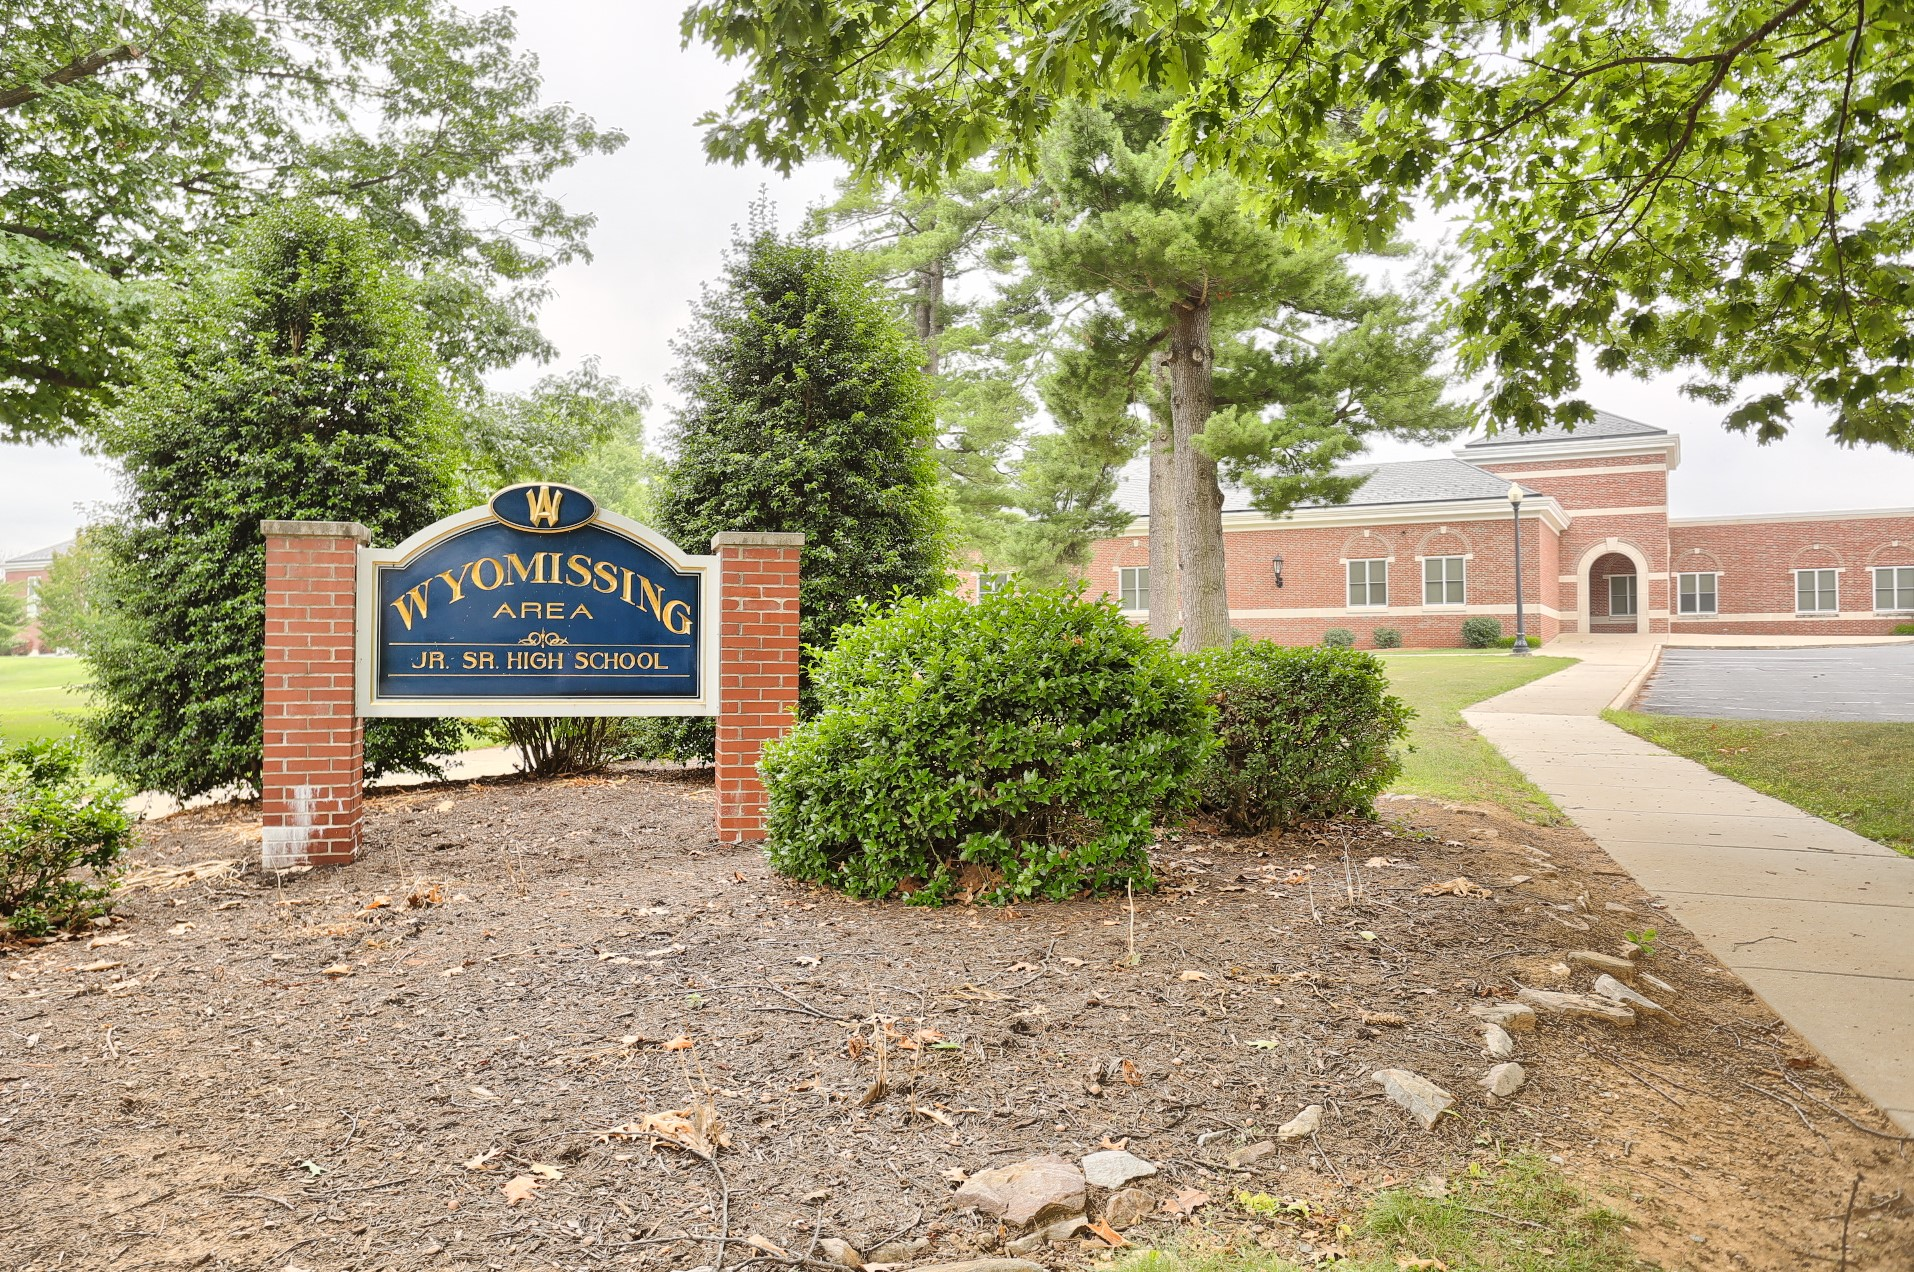 Wyomissing School Report